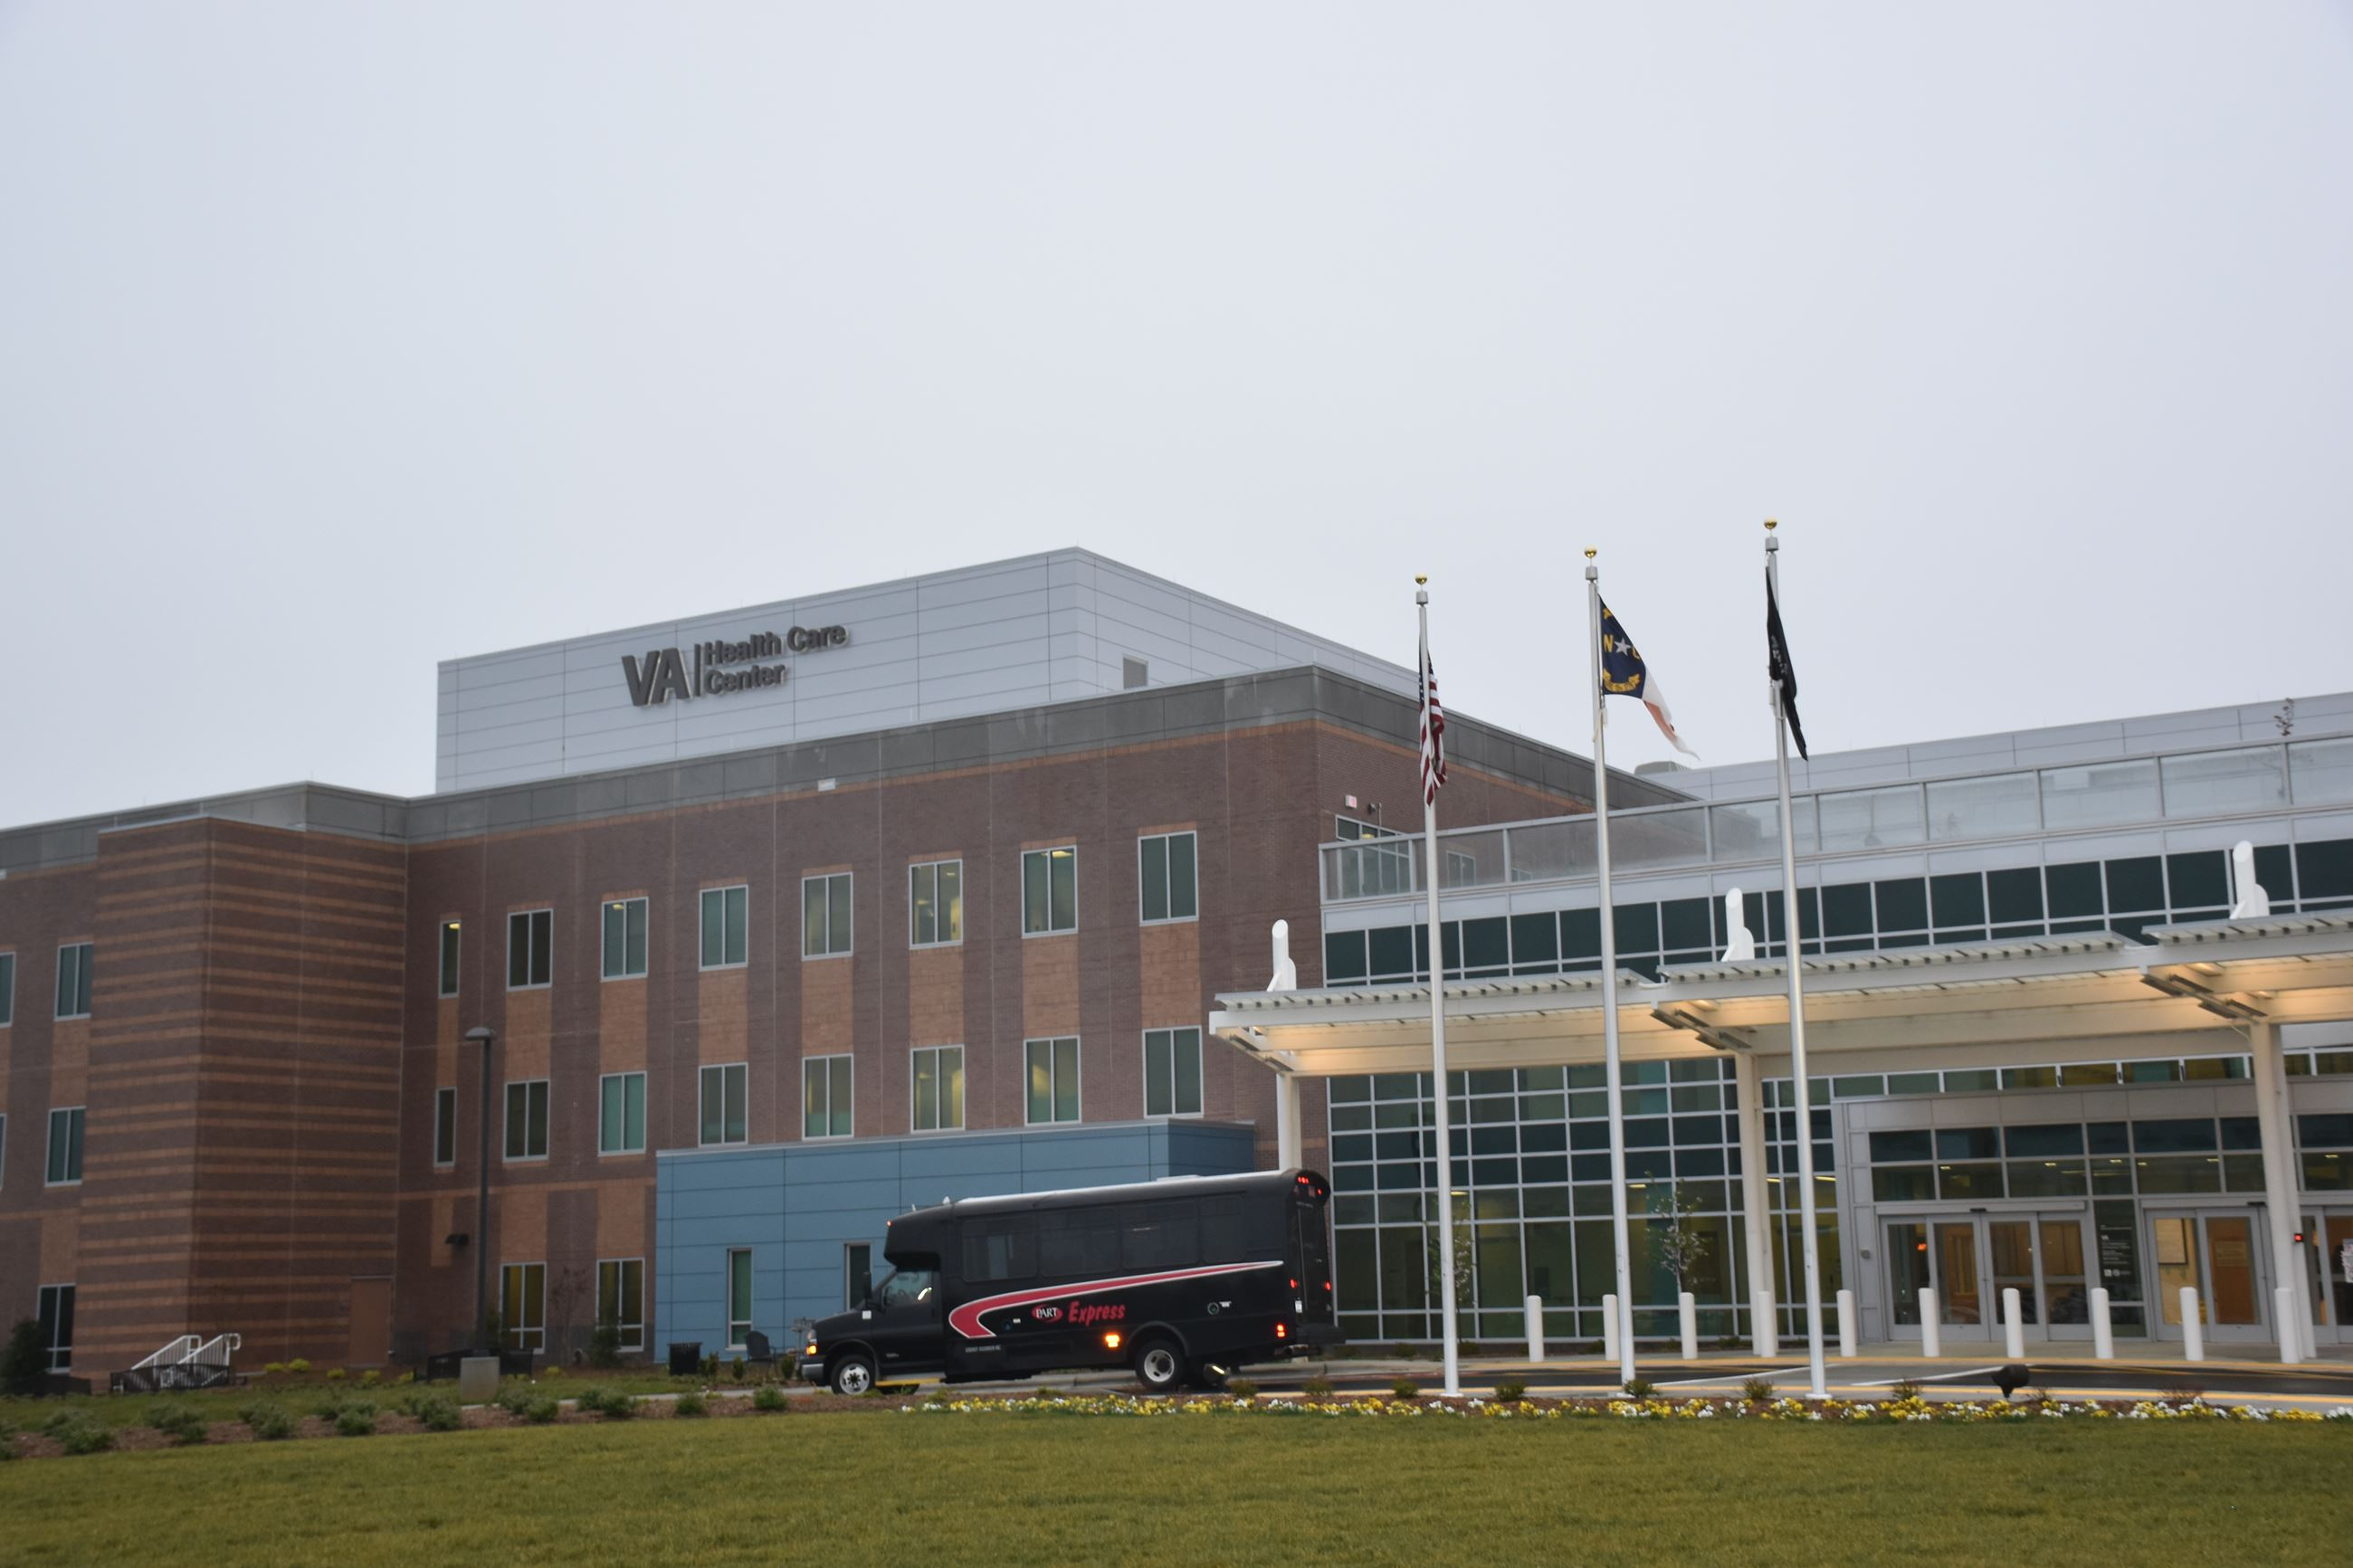 Image of VA building